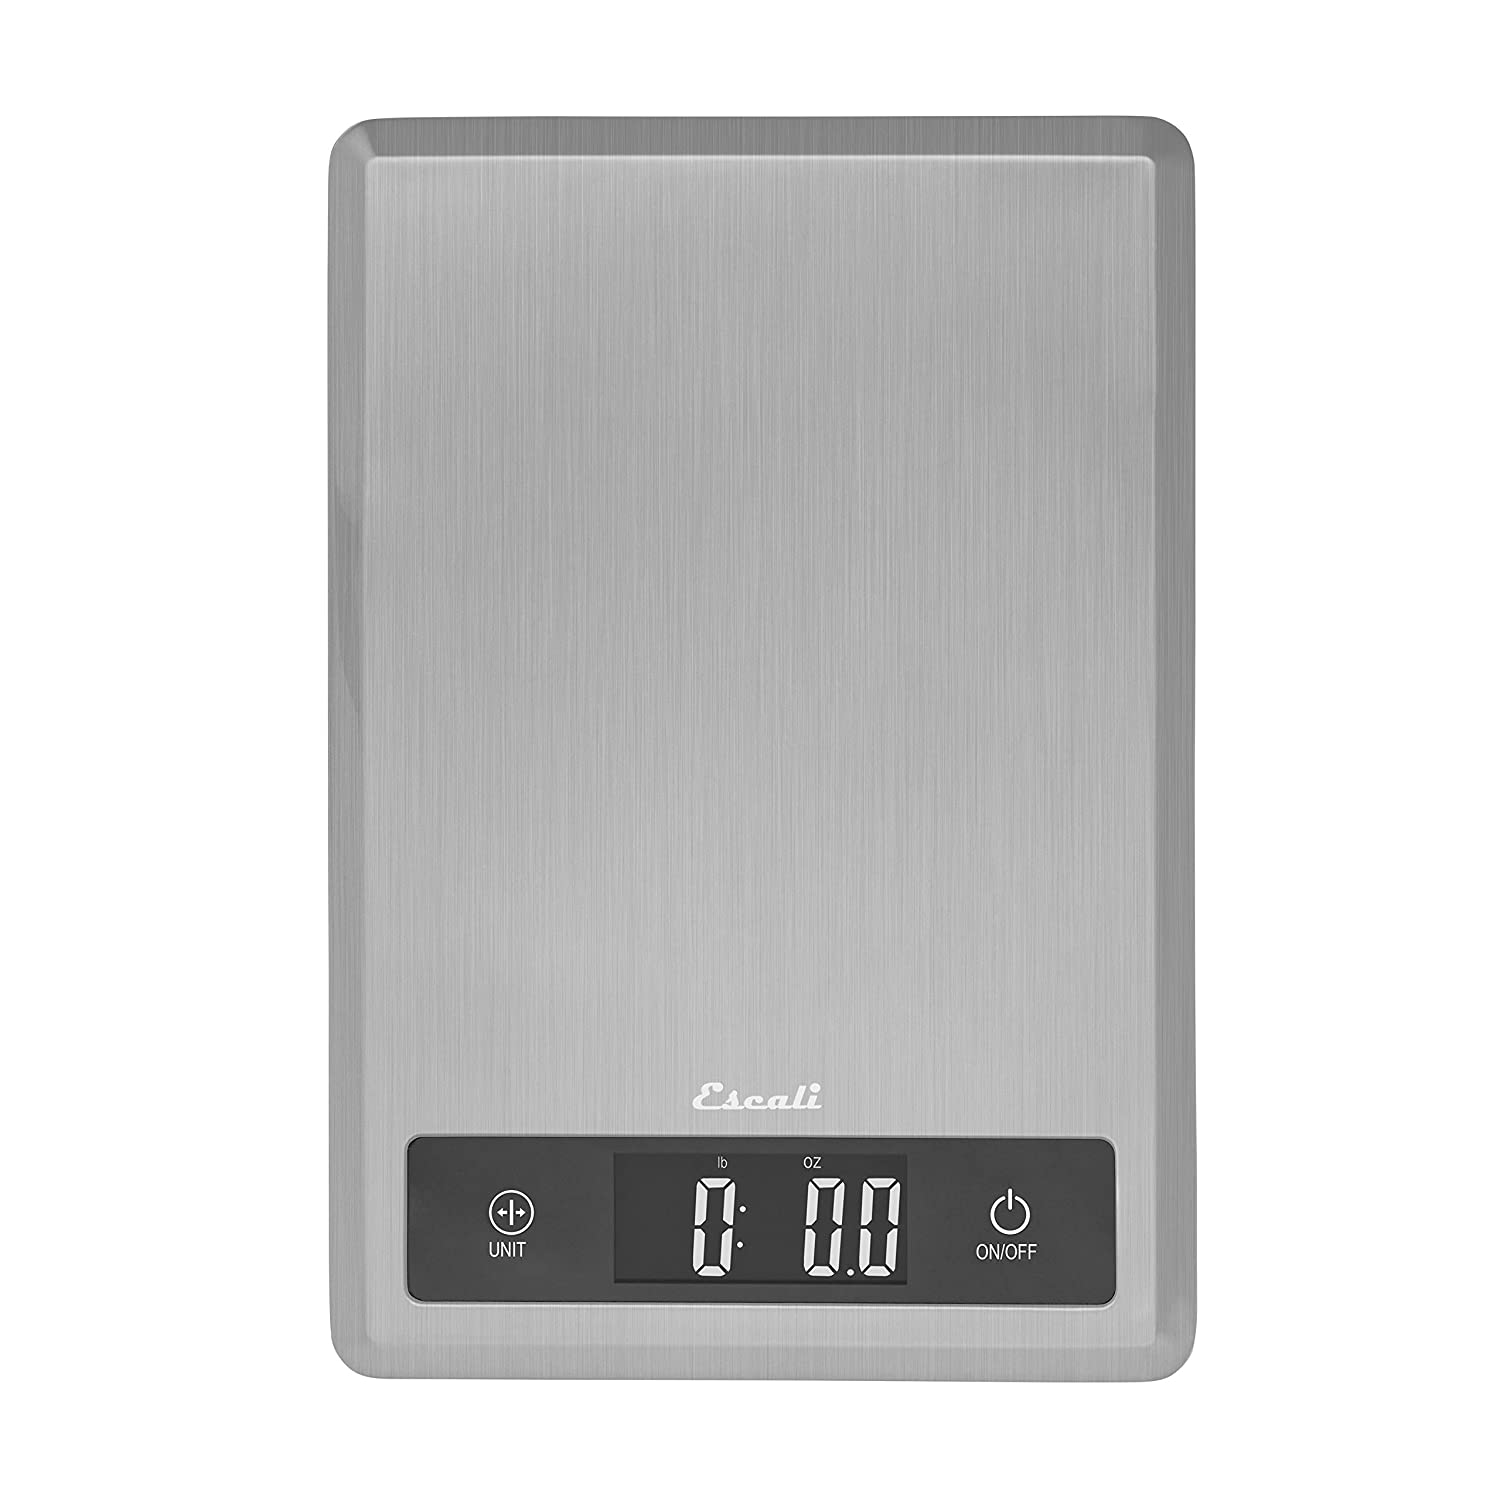 Escali T115SUltra Thin Kitchen, Office, Herb Scale, Tare Functionality, LCD Digital Display, 11lb Capacity, Silver